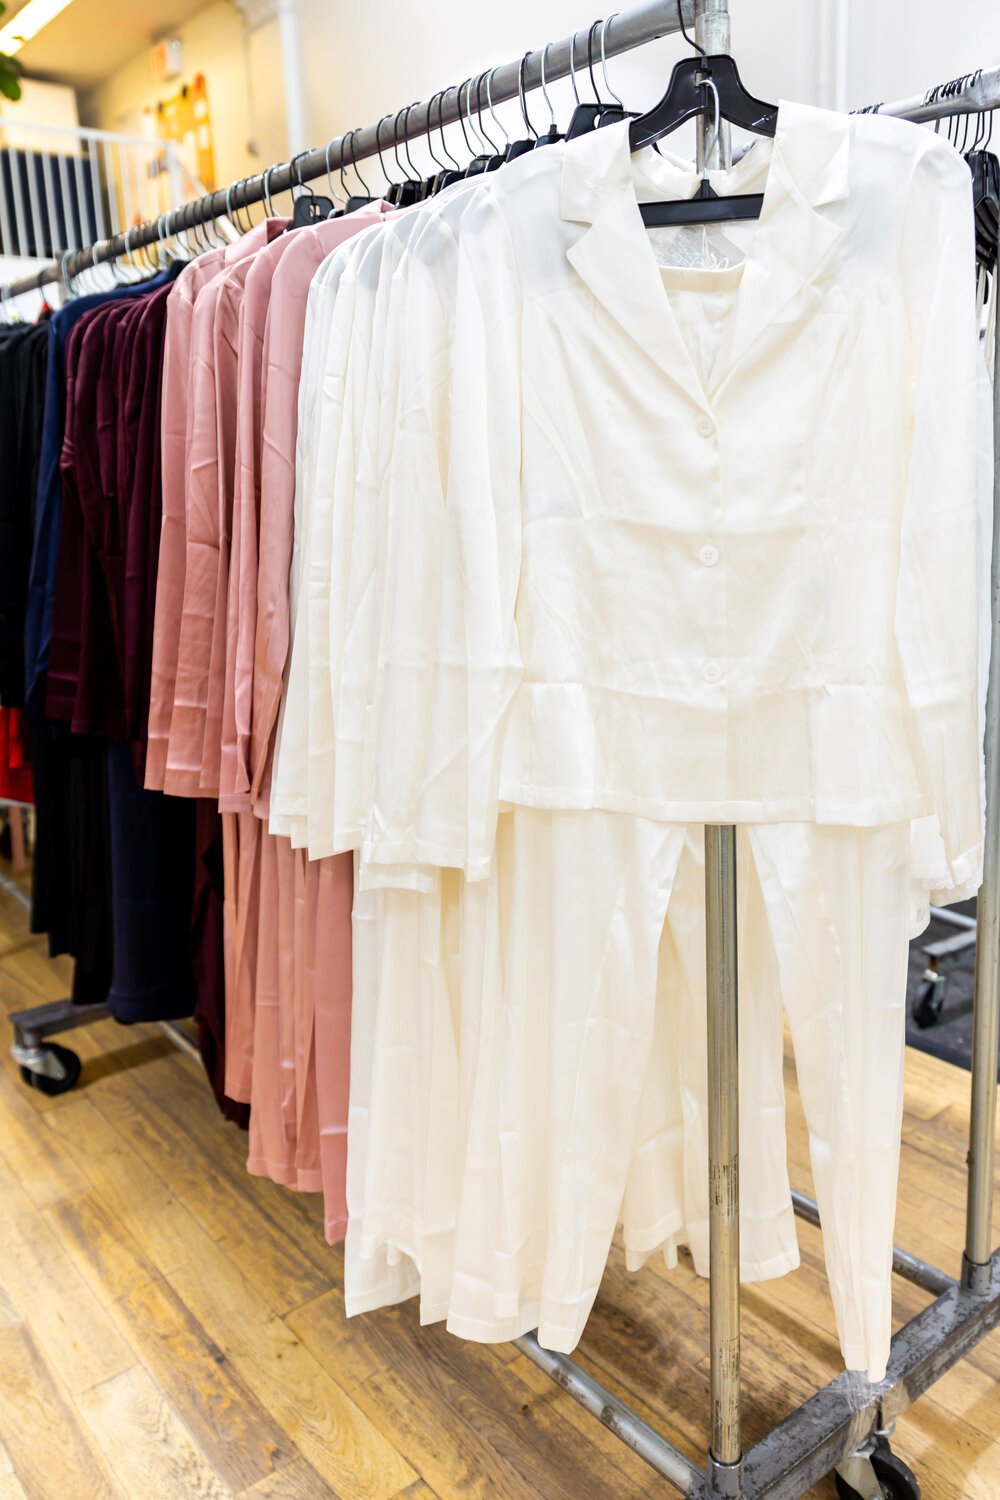 La Perla Sample Sale in Images